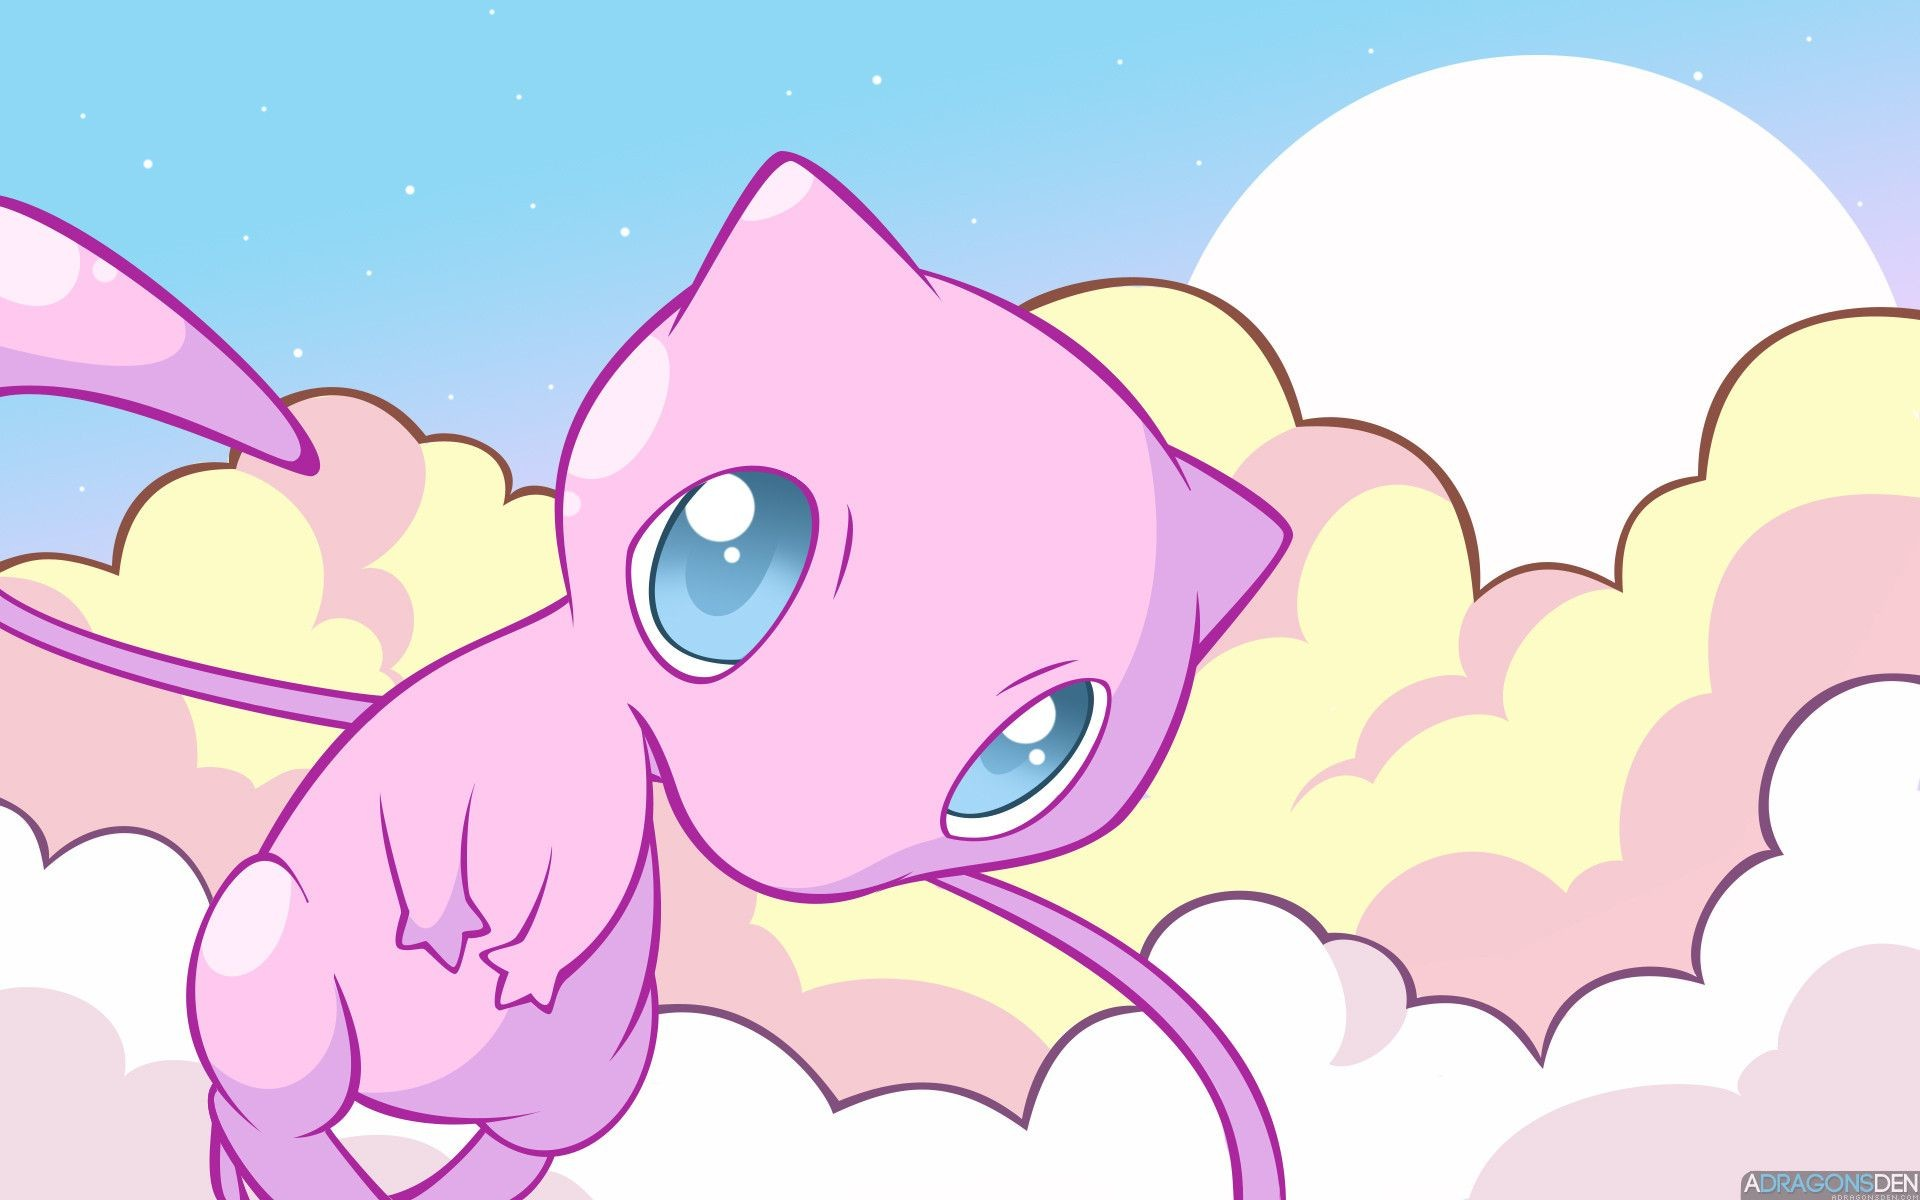 1920x1200 Mew the Pokemon images Mew in the Clouds HD wallpaper and background photos